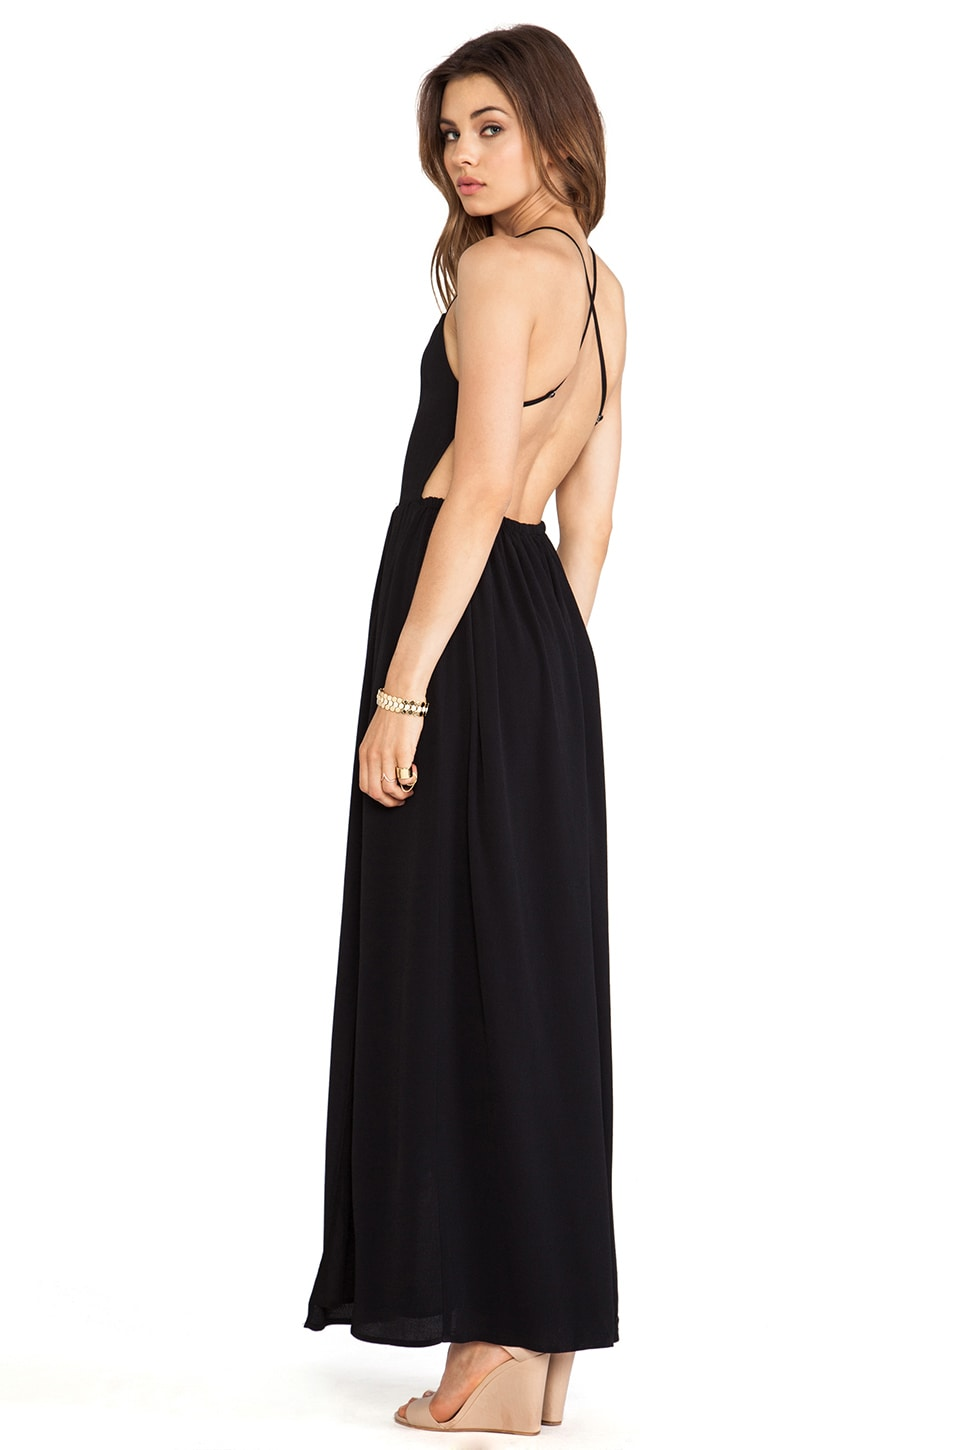 BLAQUE LABEL Dress in Black